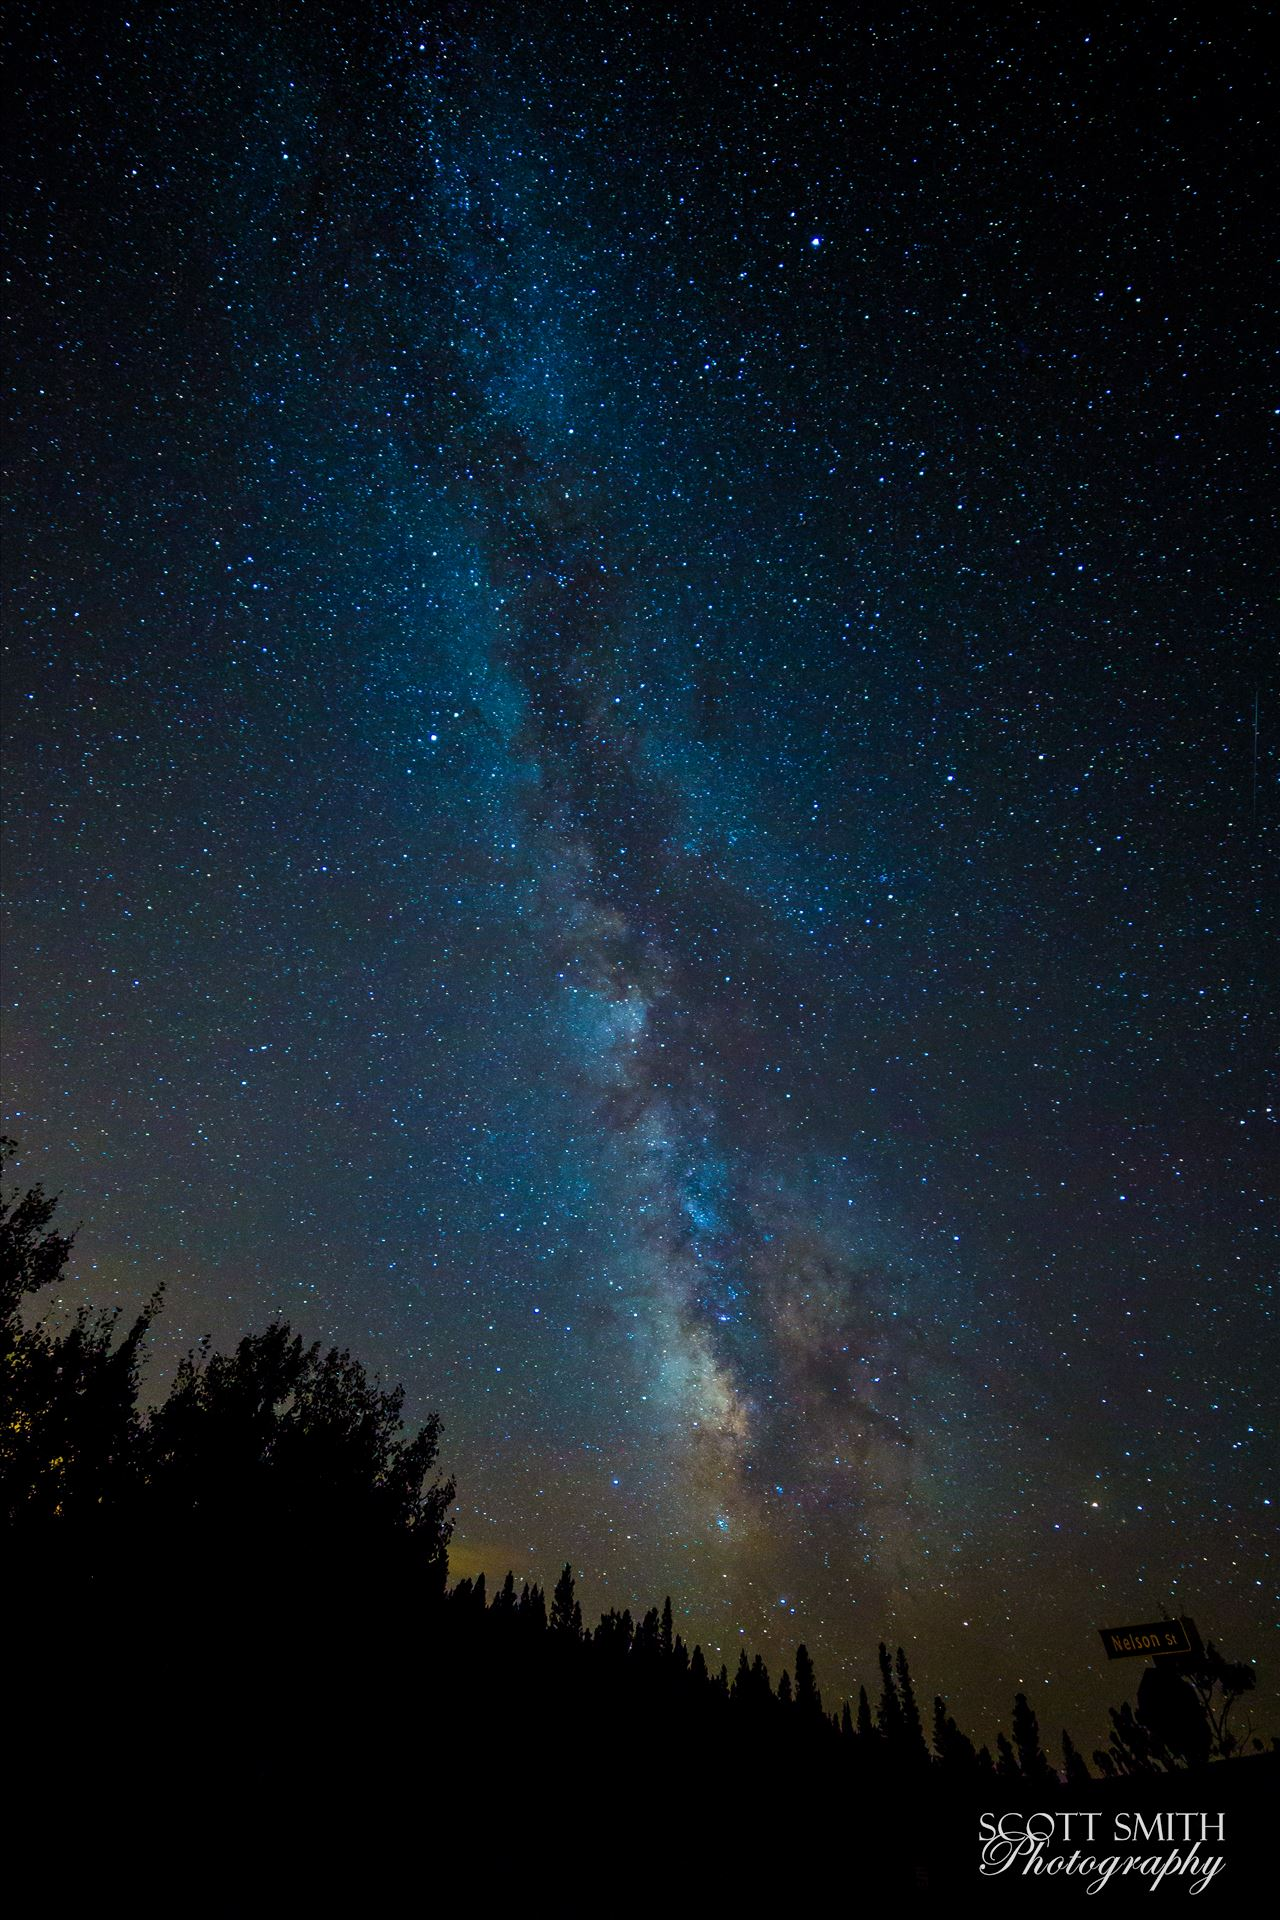 Milky Way From Ward - On my way to shoot the Perseid meteor shower I stopped and snapped this great view of the milky way. by D Scott Smith